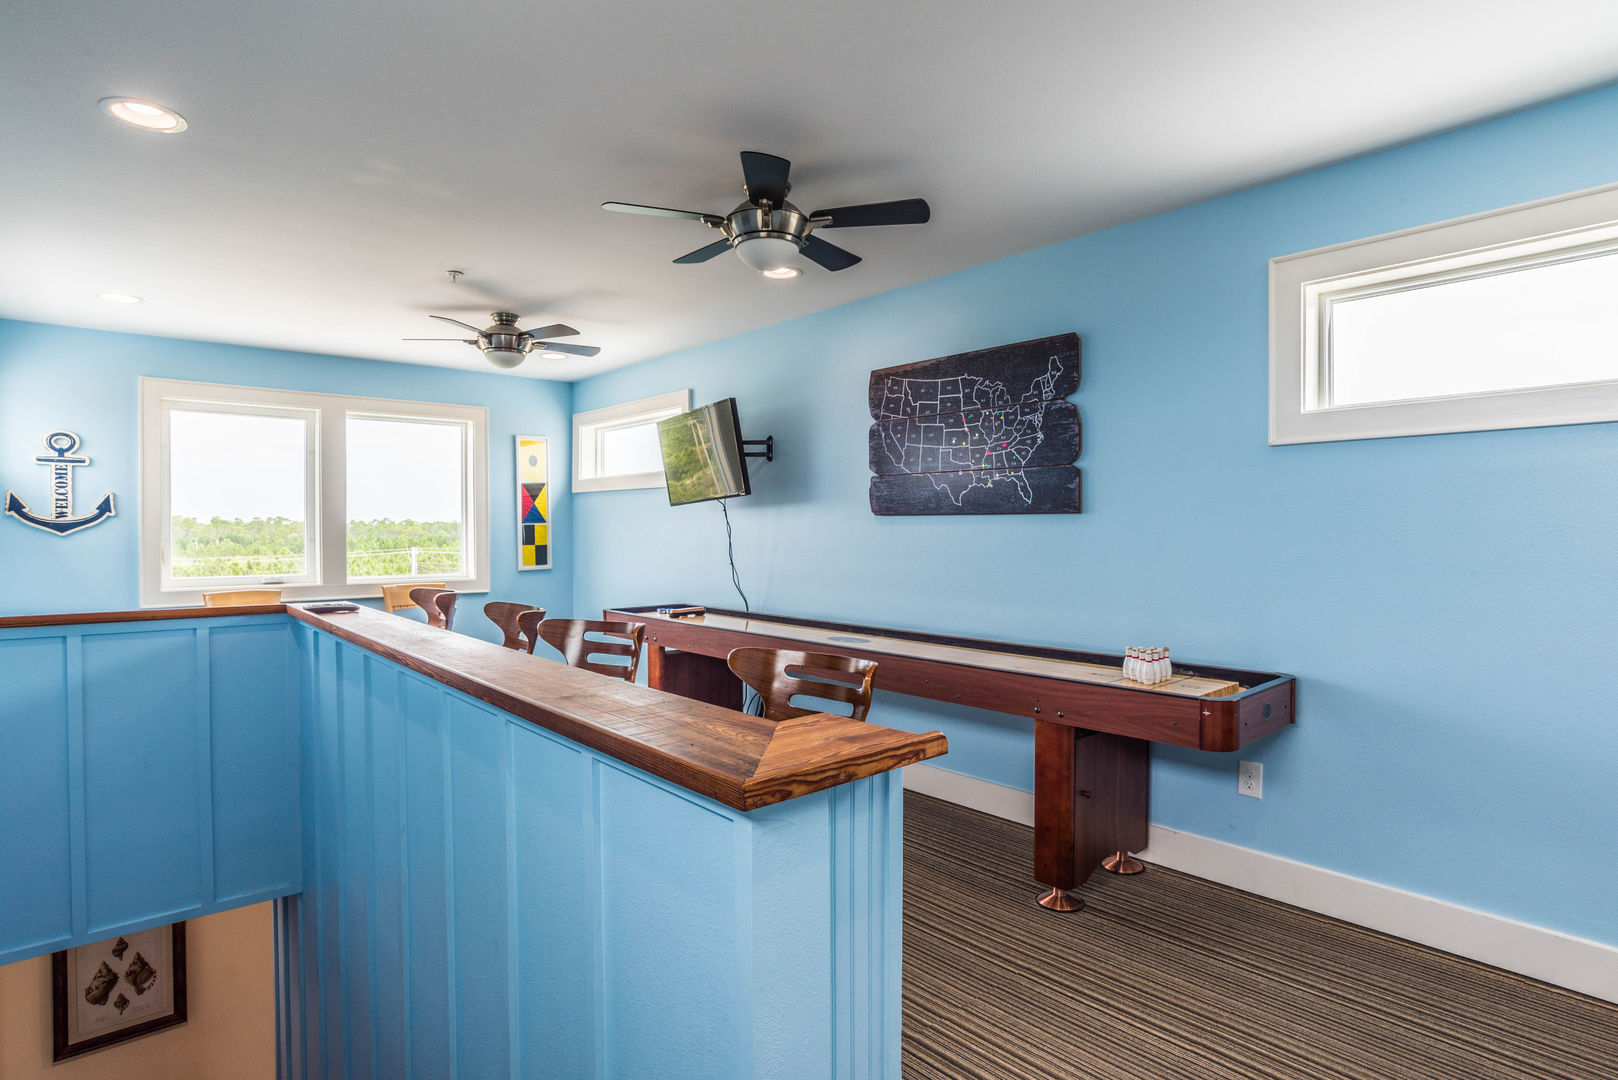 Tabletop Shuffleboard Game in our Fort Morgan, AL Vacation Rental